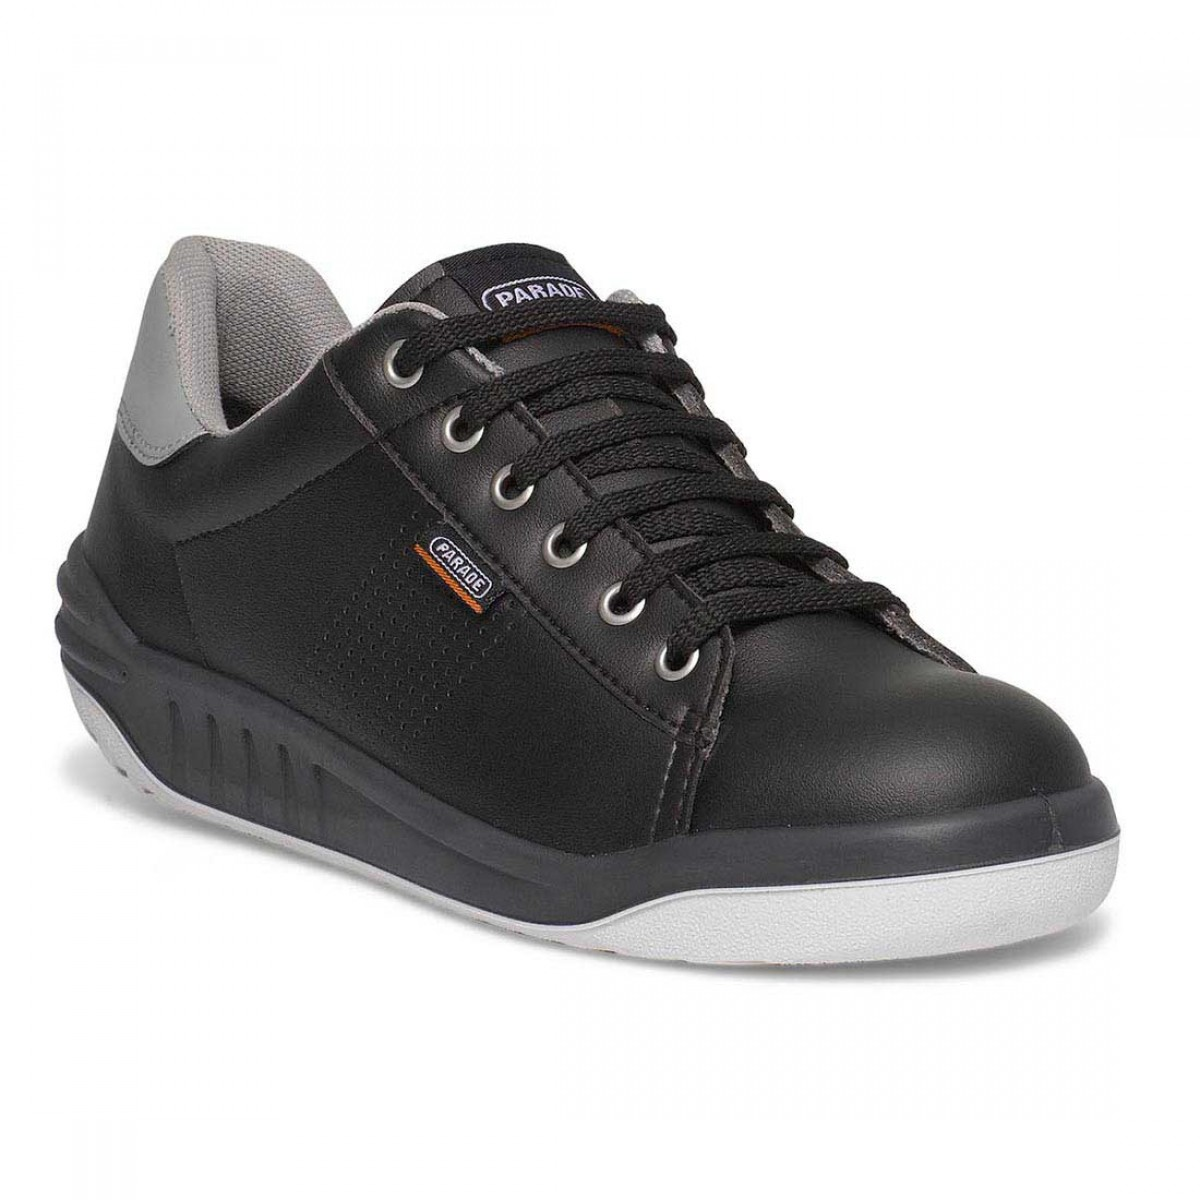 reputable site 6e317 f7049 Parade Jamma Black Premium Unisex Safety Trainers with VPS Comfort System